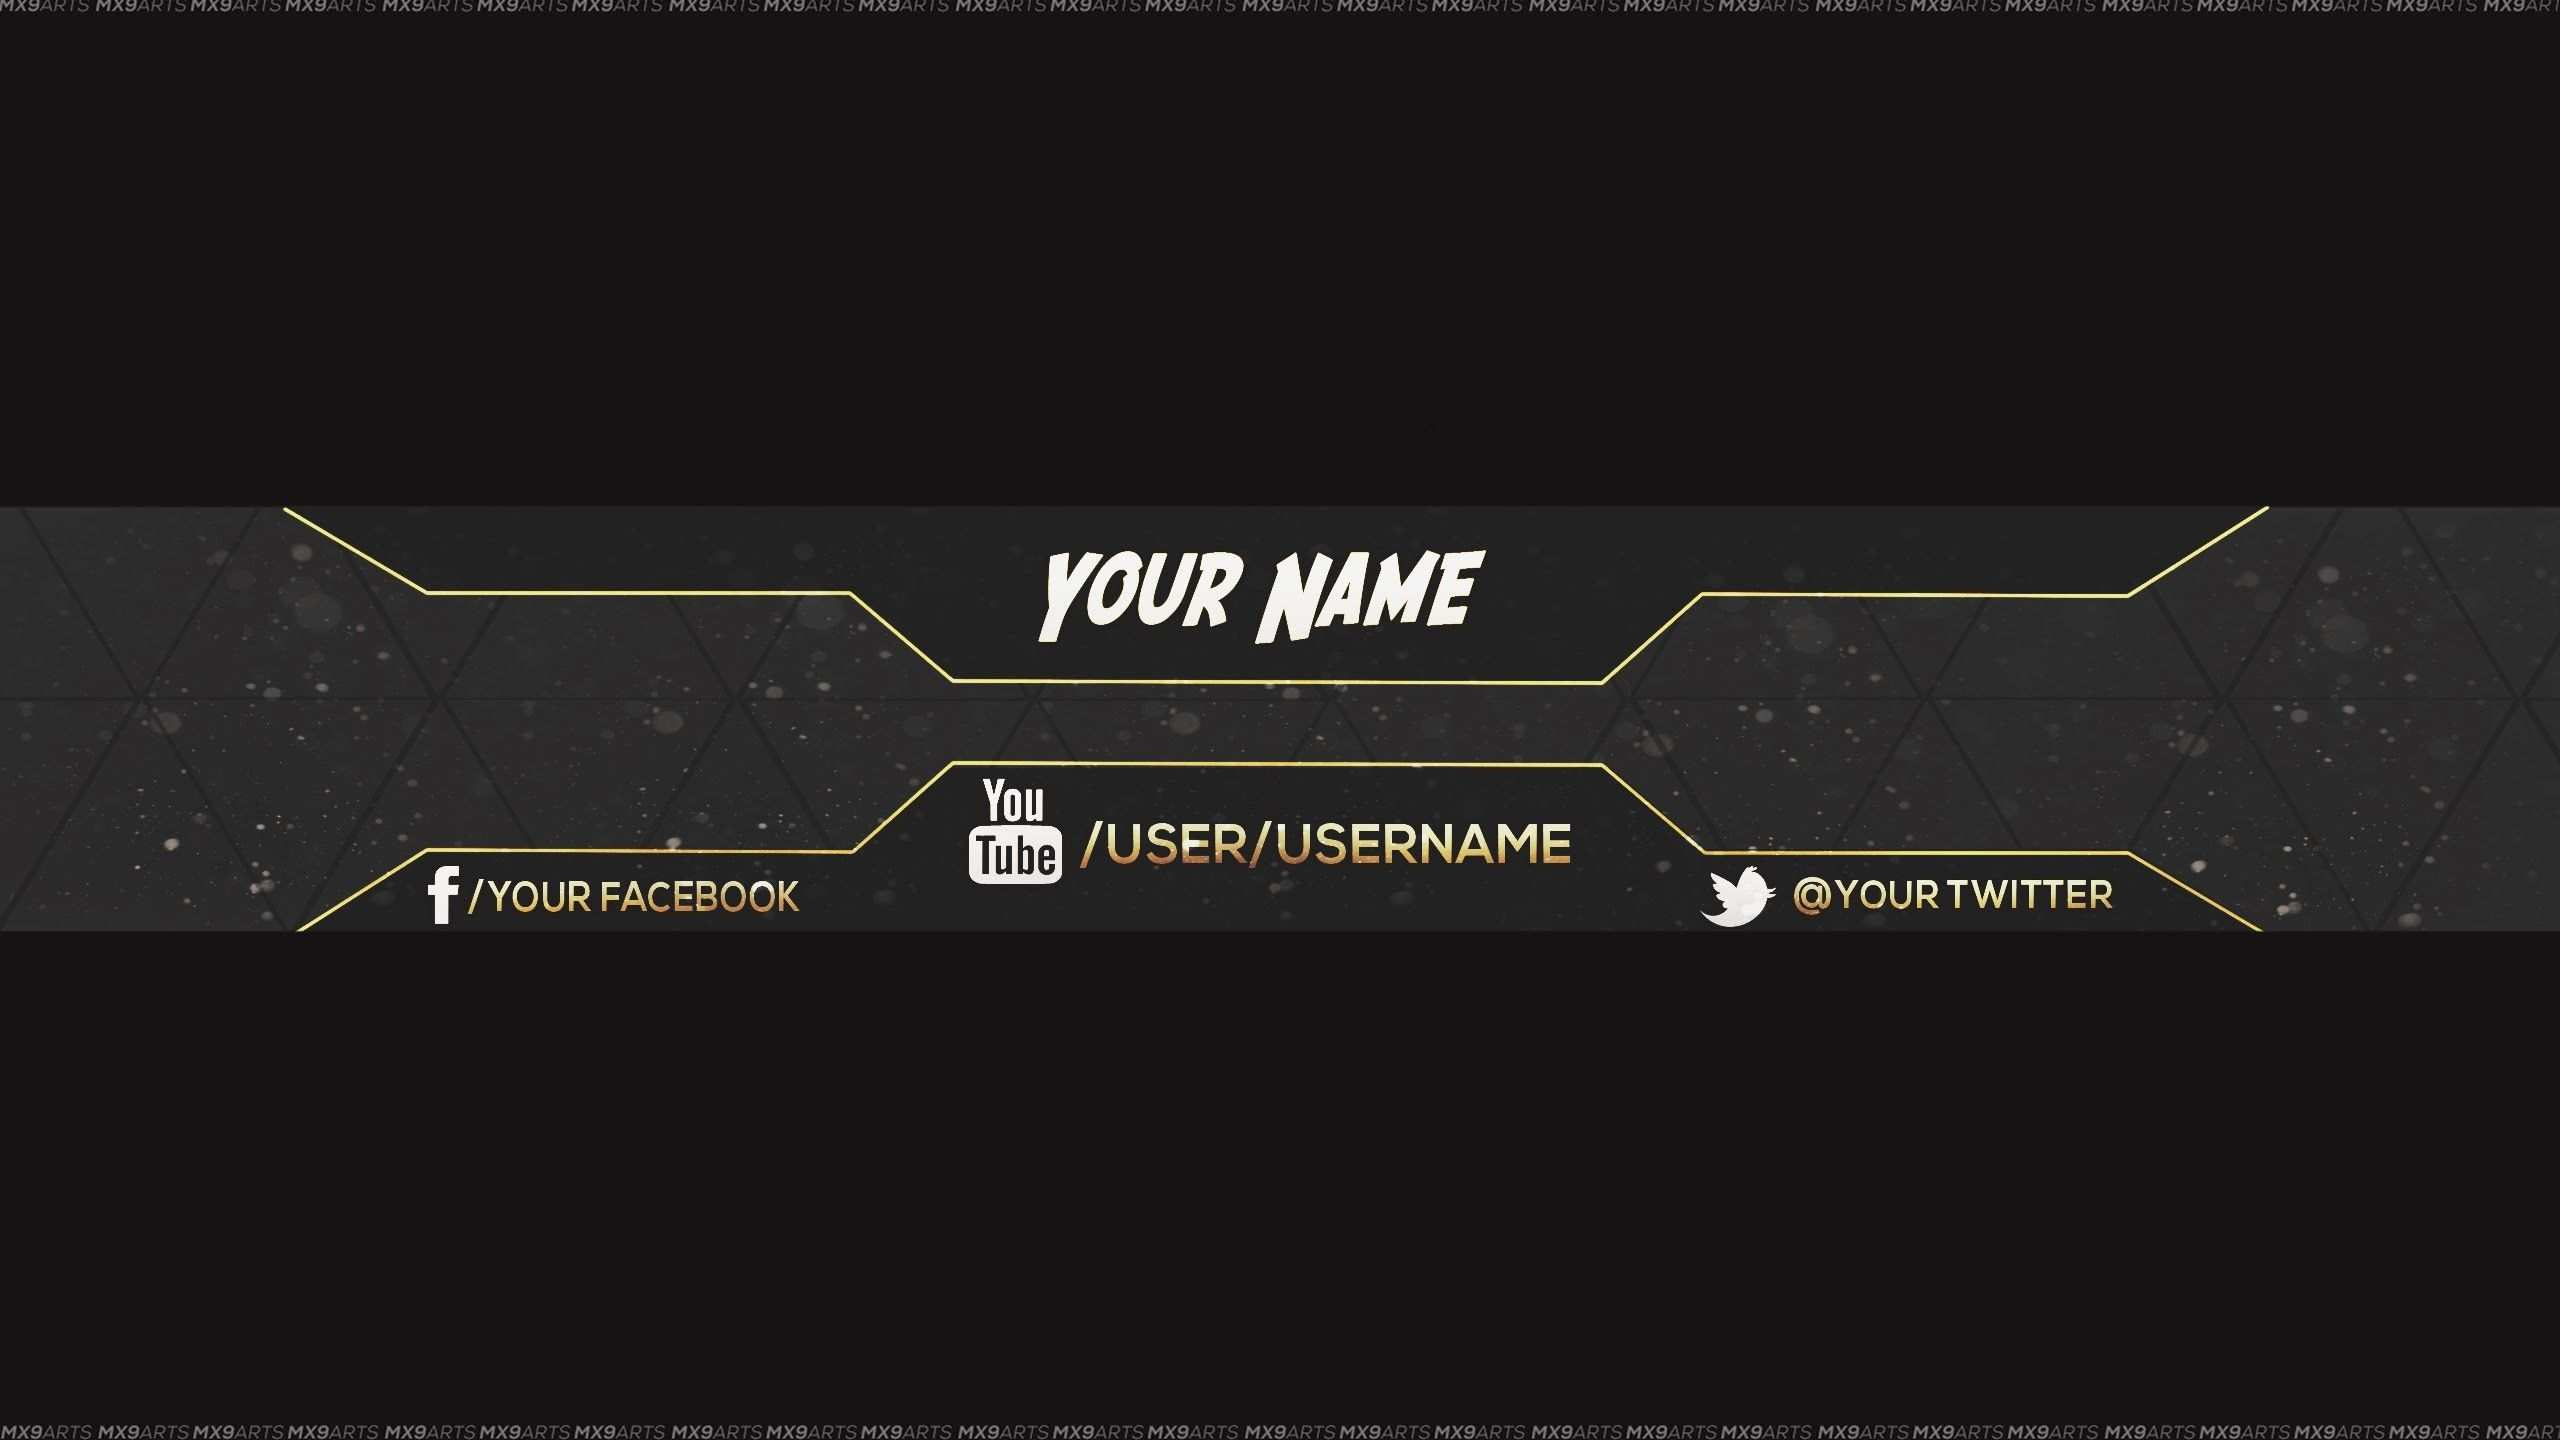 Res 2560x1440 Reupload Free Amazing Youtube Channel Banner